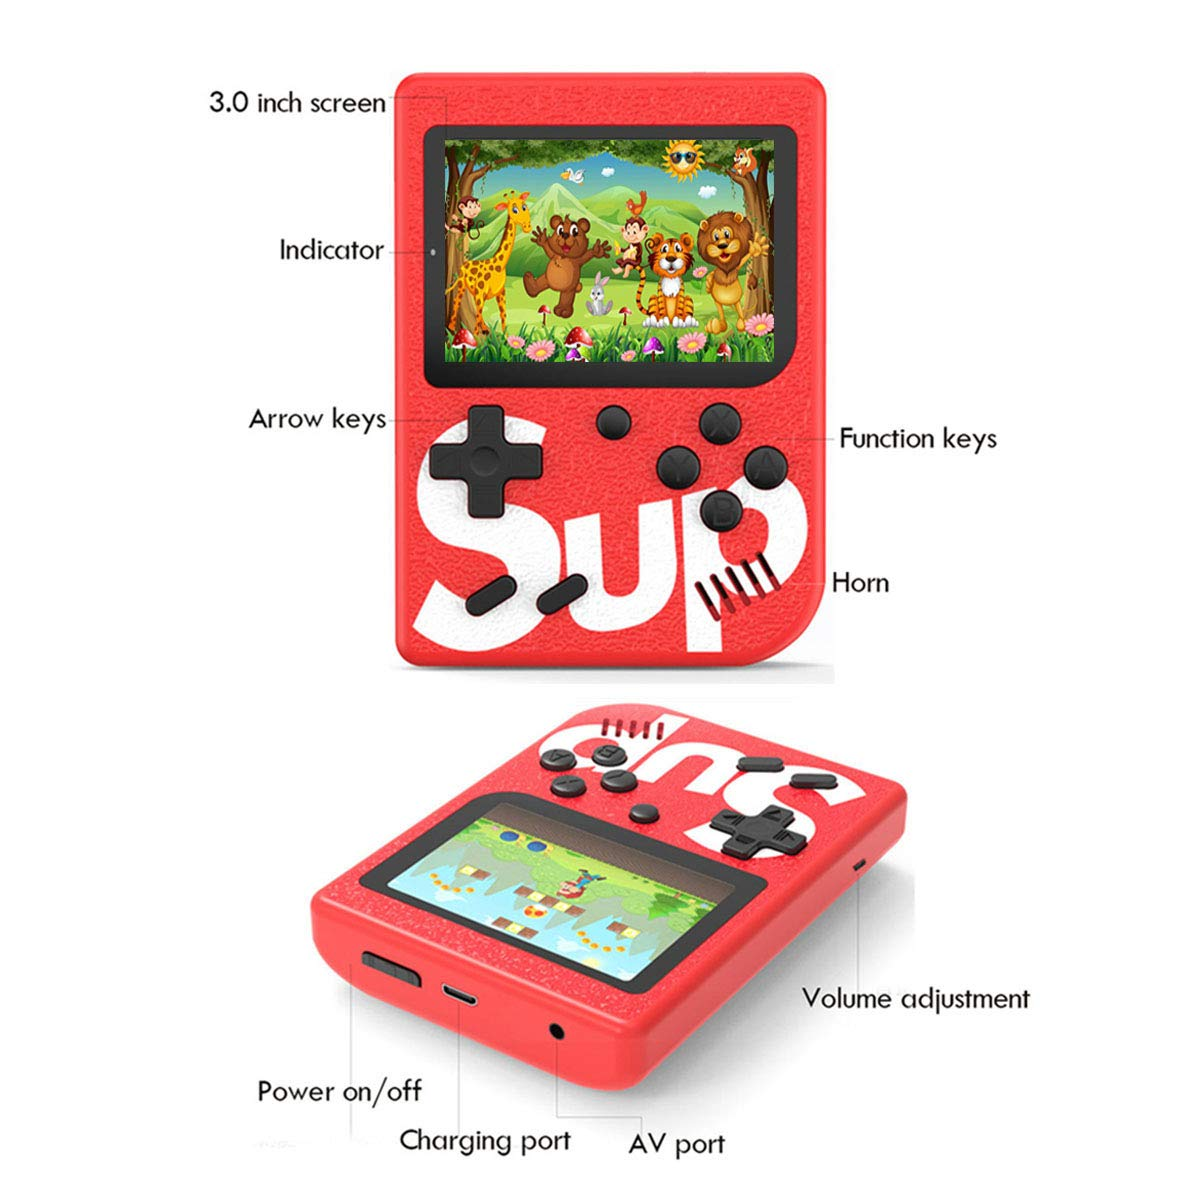 BYLGKE Handheld Games Console Built-in 400 Classic Games 3.0 Inch Screen Support for 2 Players Connecting TV Great for Kids// Adult